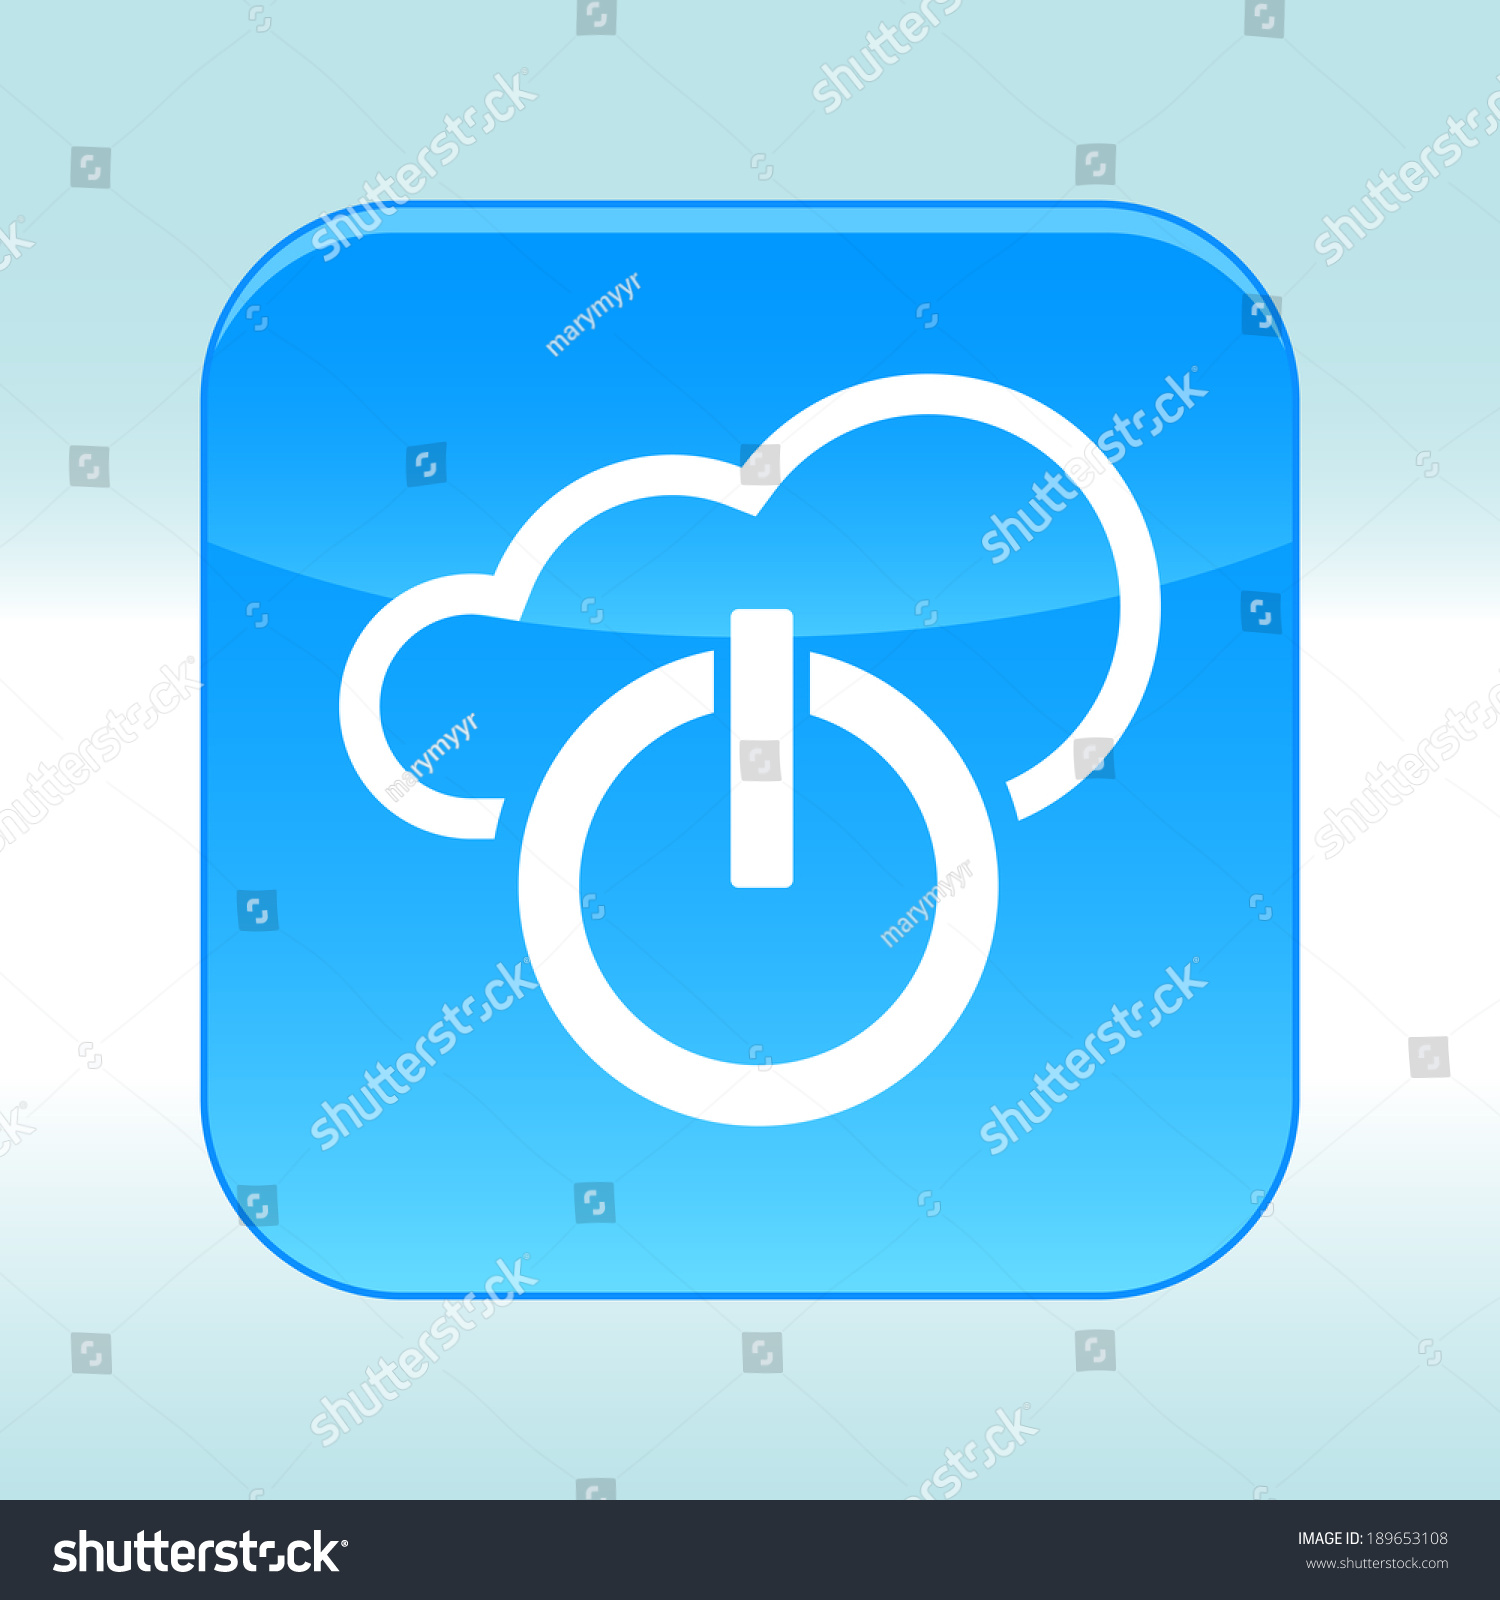 Blue Web Icon Stock Illustration 189653108 - Shutterstock